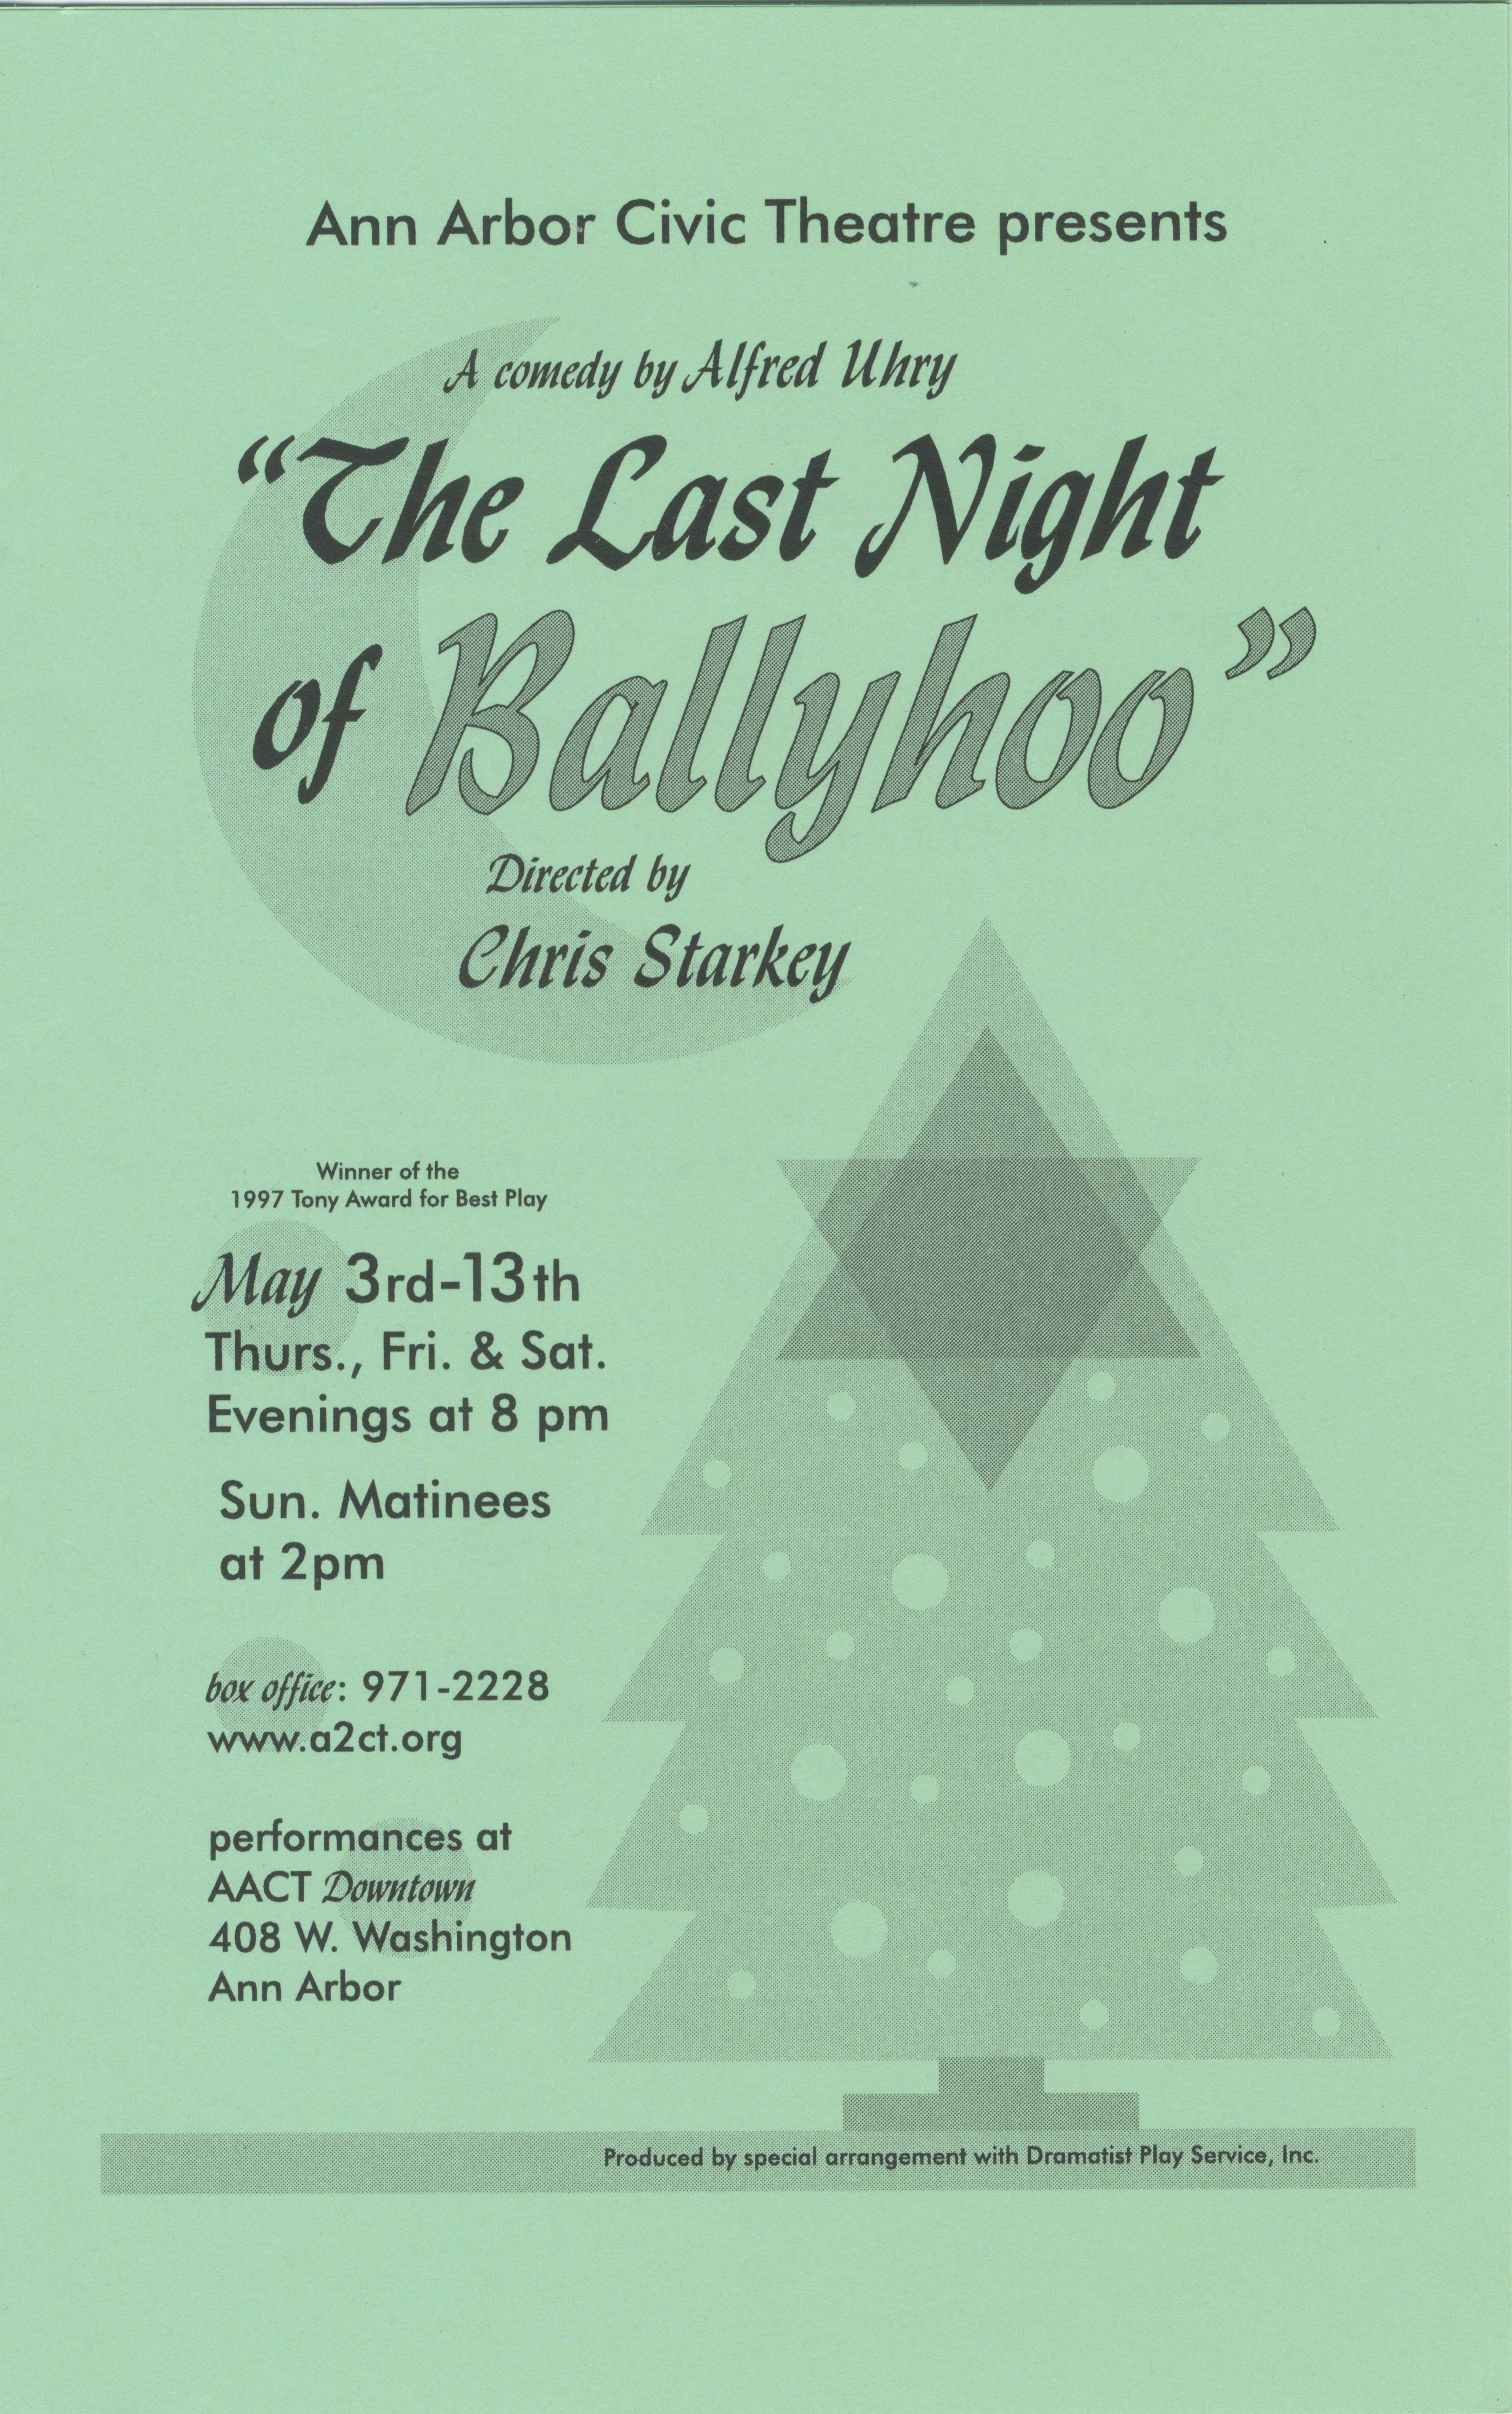 Ann Arbor Civic Theatre Program: The Last Night of Ballyhoo, May 03, 2001 image